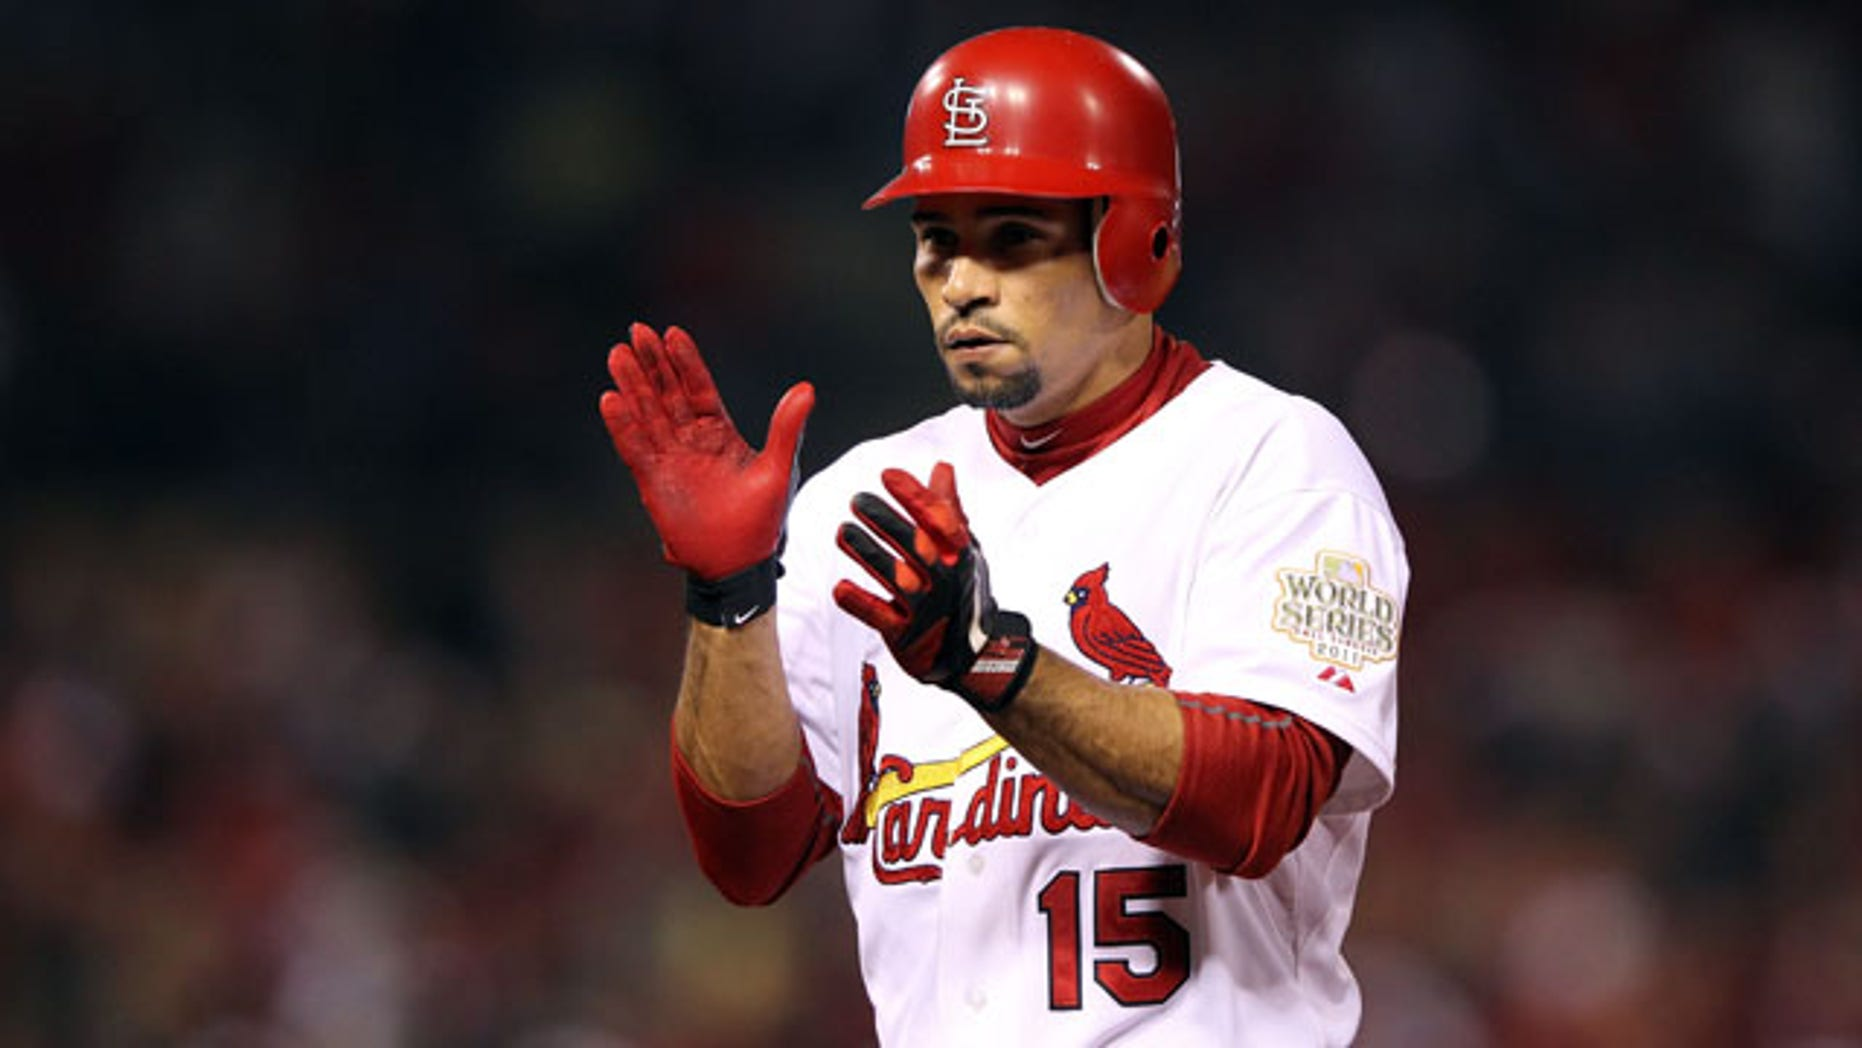 ST LOUIS, MO - OCTOBER 28:  Rafael Furcal #15 of the St. Louis Cardinals celebrates after hitting a single in the second inning during Game Seven of the MLB World Series against the Texas Rangers at Busch Stadium on October 28, 2011 in St Louis, Missouri.  (Photo by Jamie Squire/Getty Images)